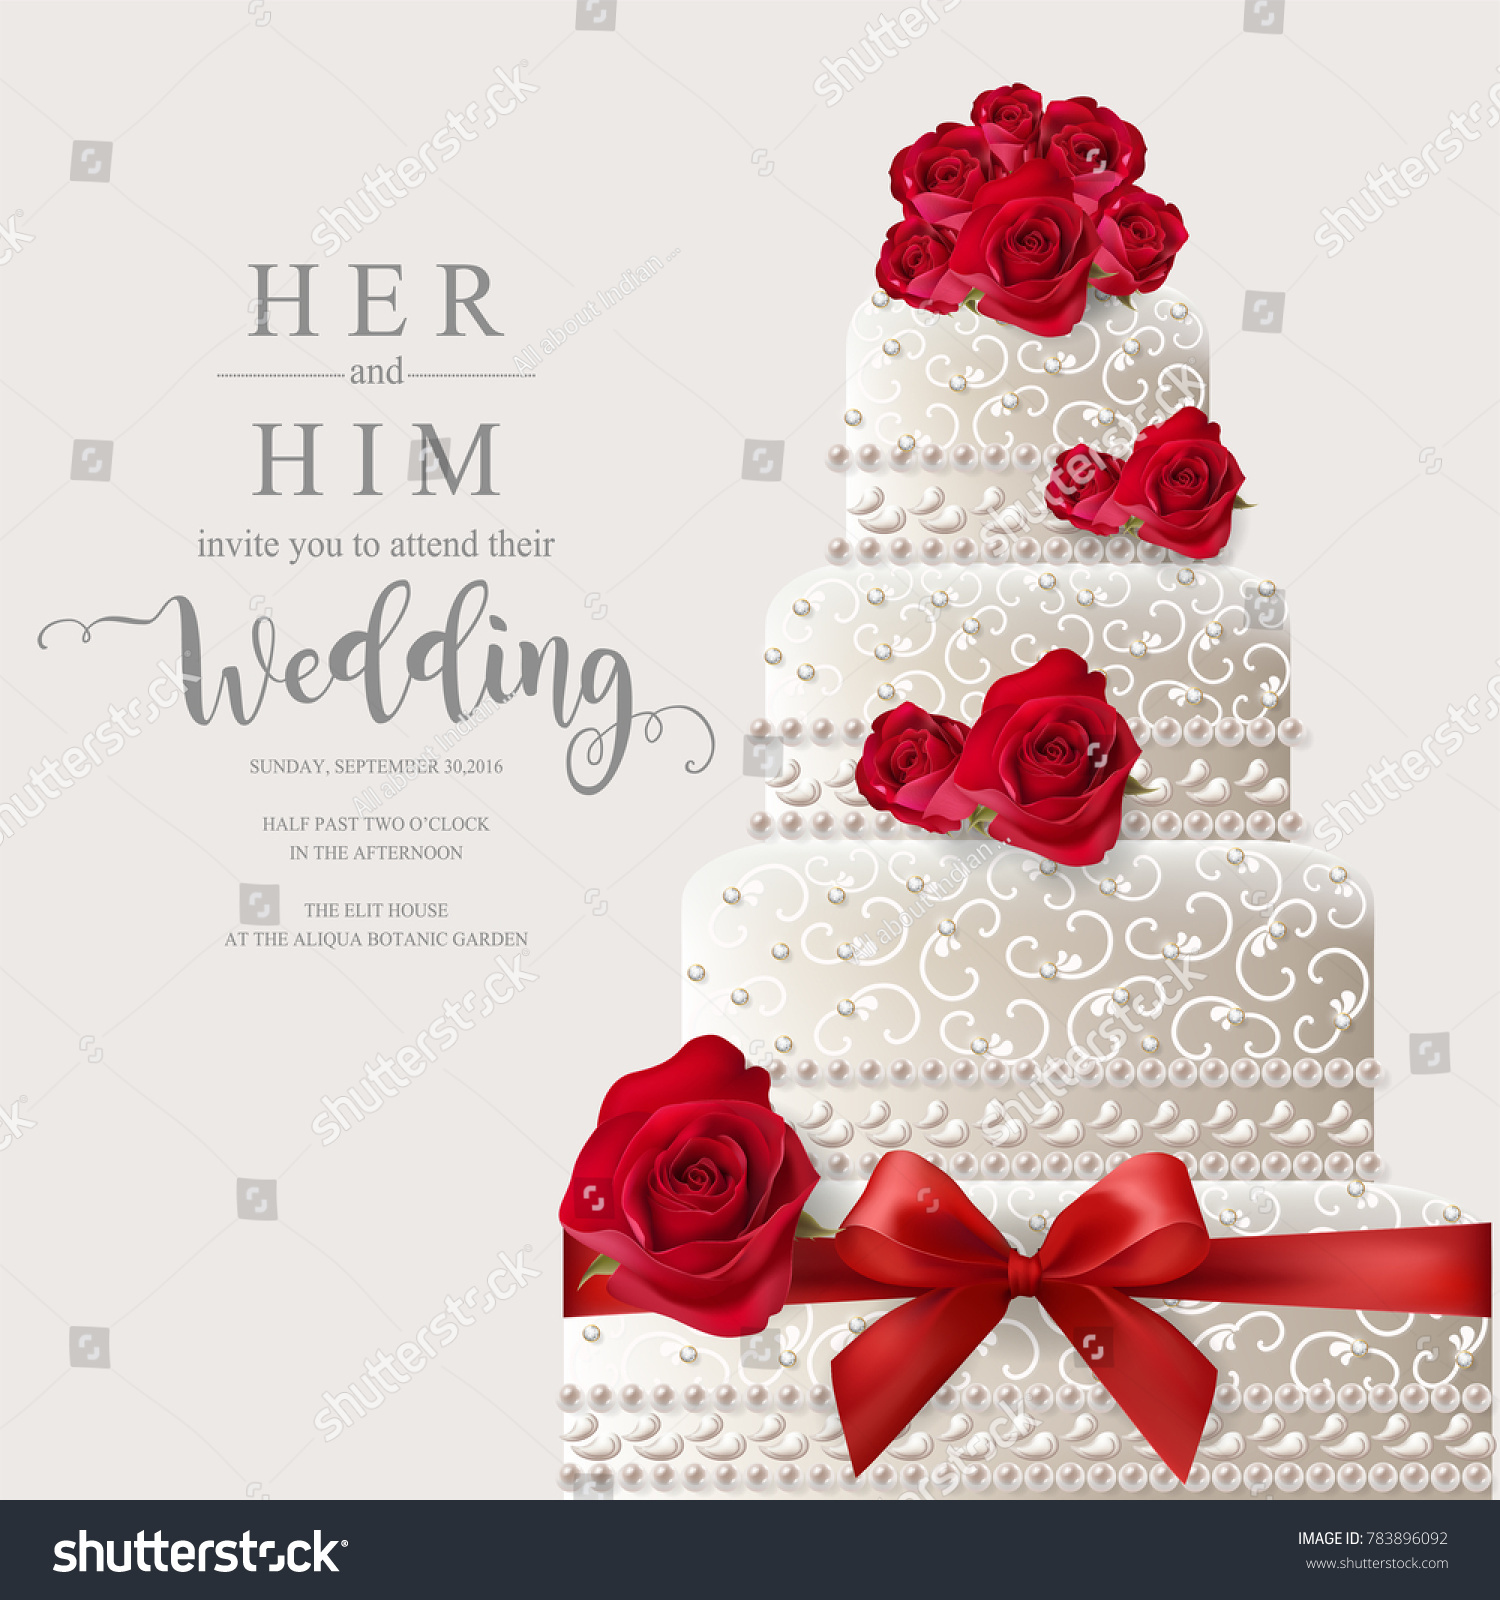 Colorful Wedding Invite Vector Ideas - Invitations and Announcements ...